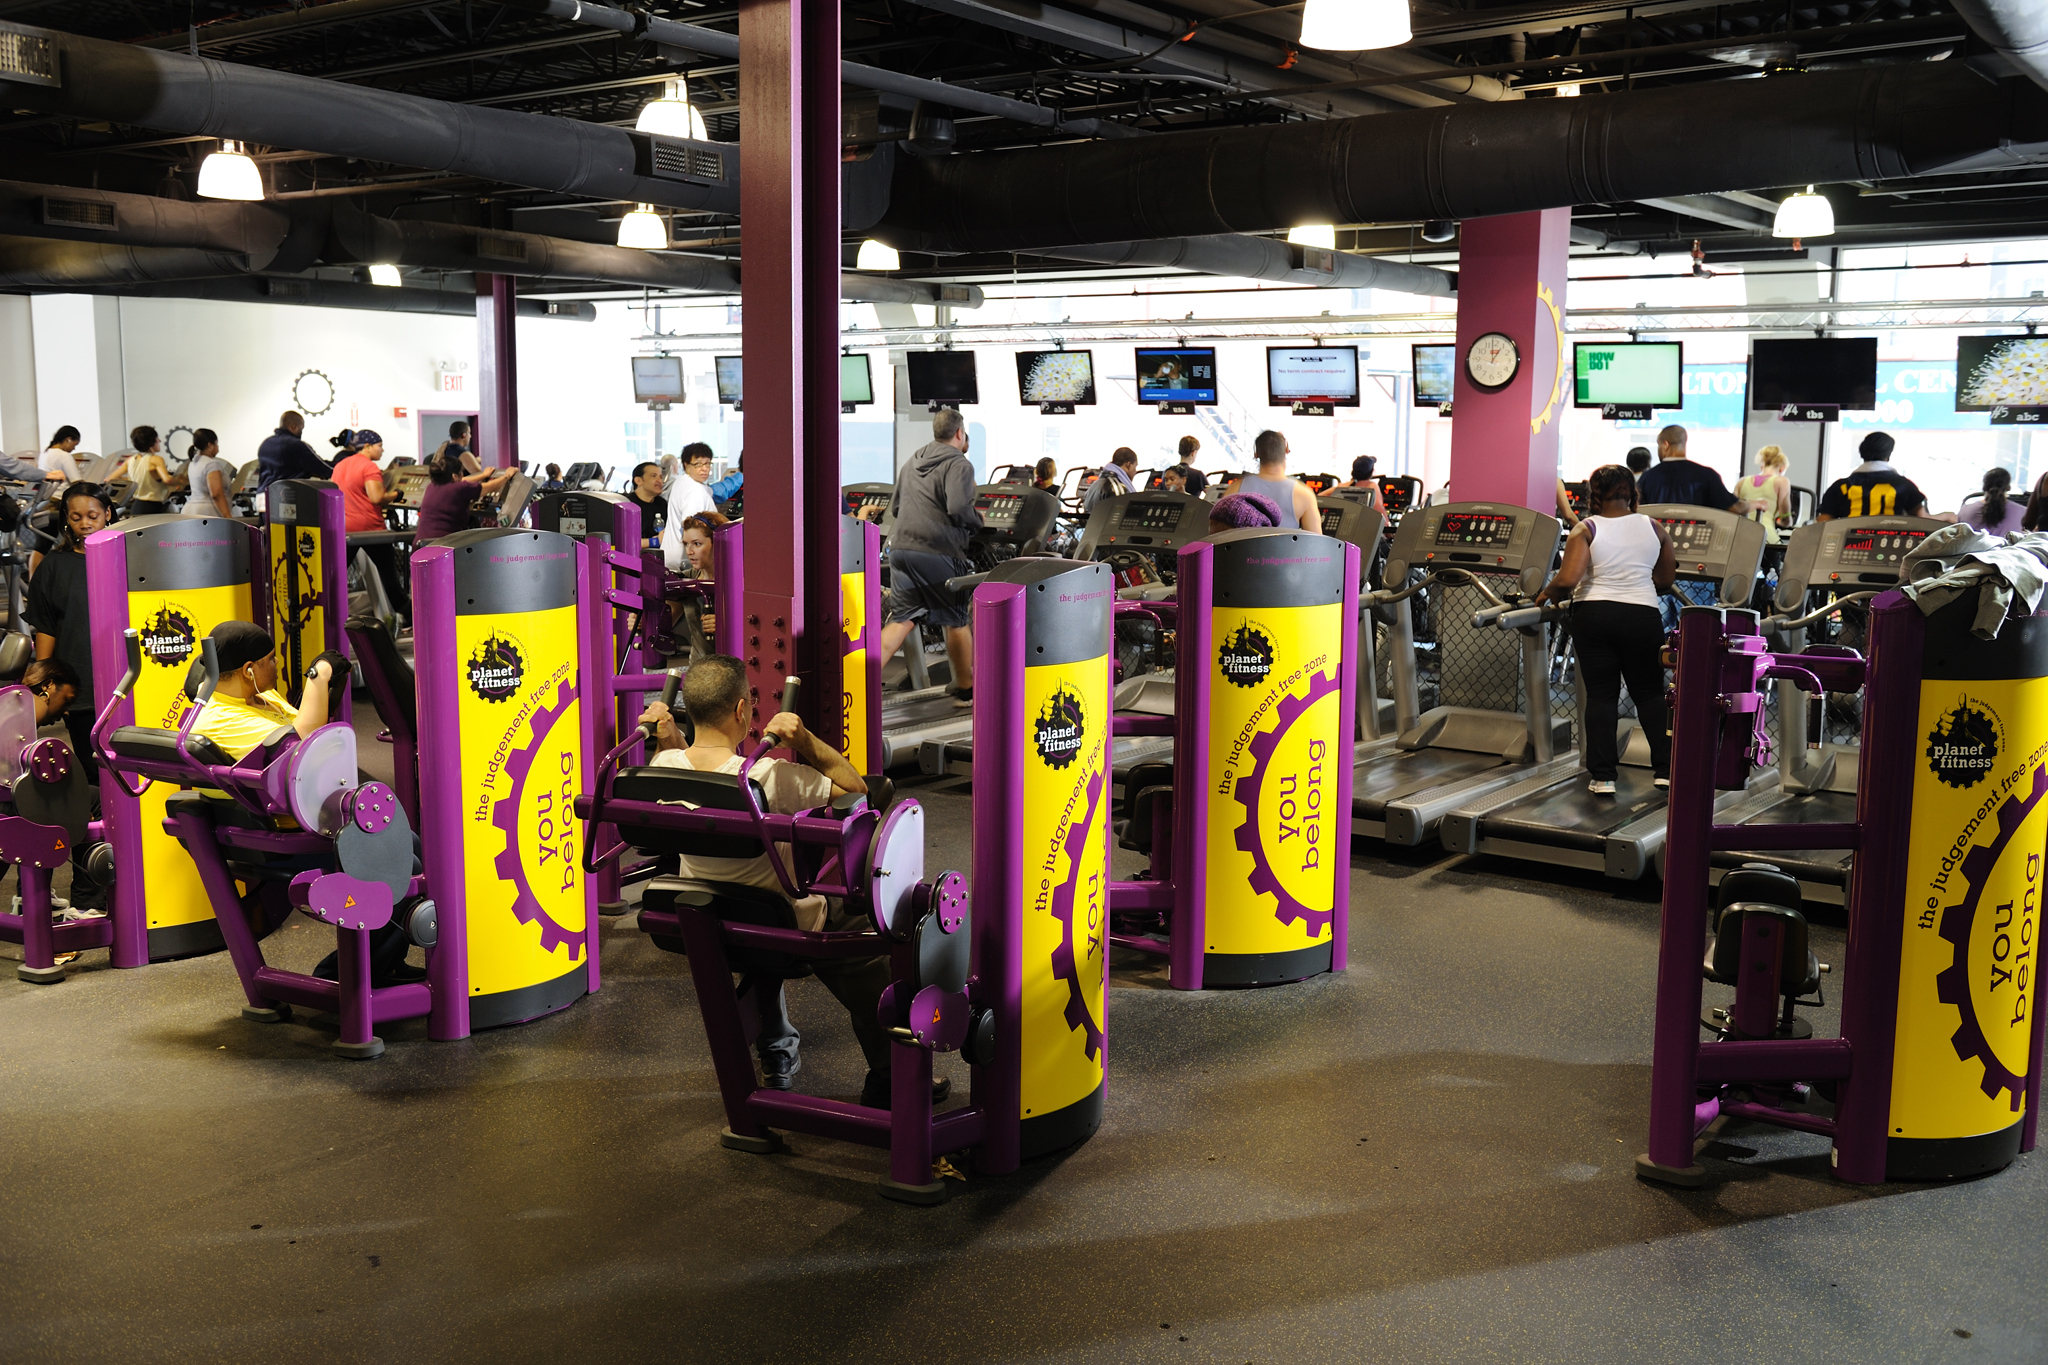 photograph courtesy planet fitness